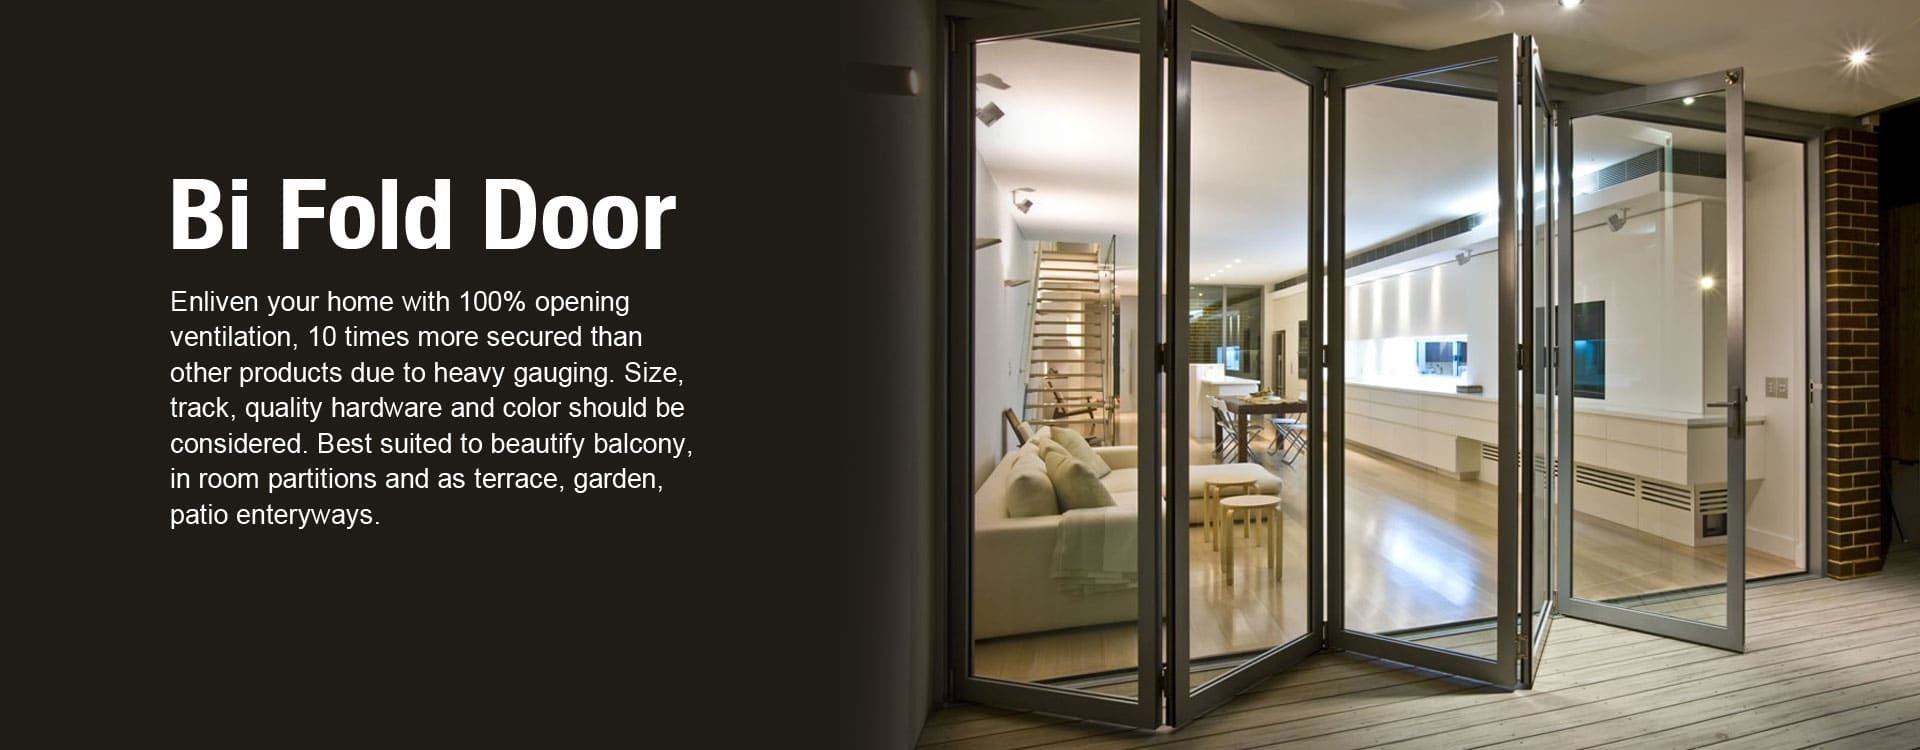 upvc bifold door